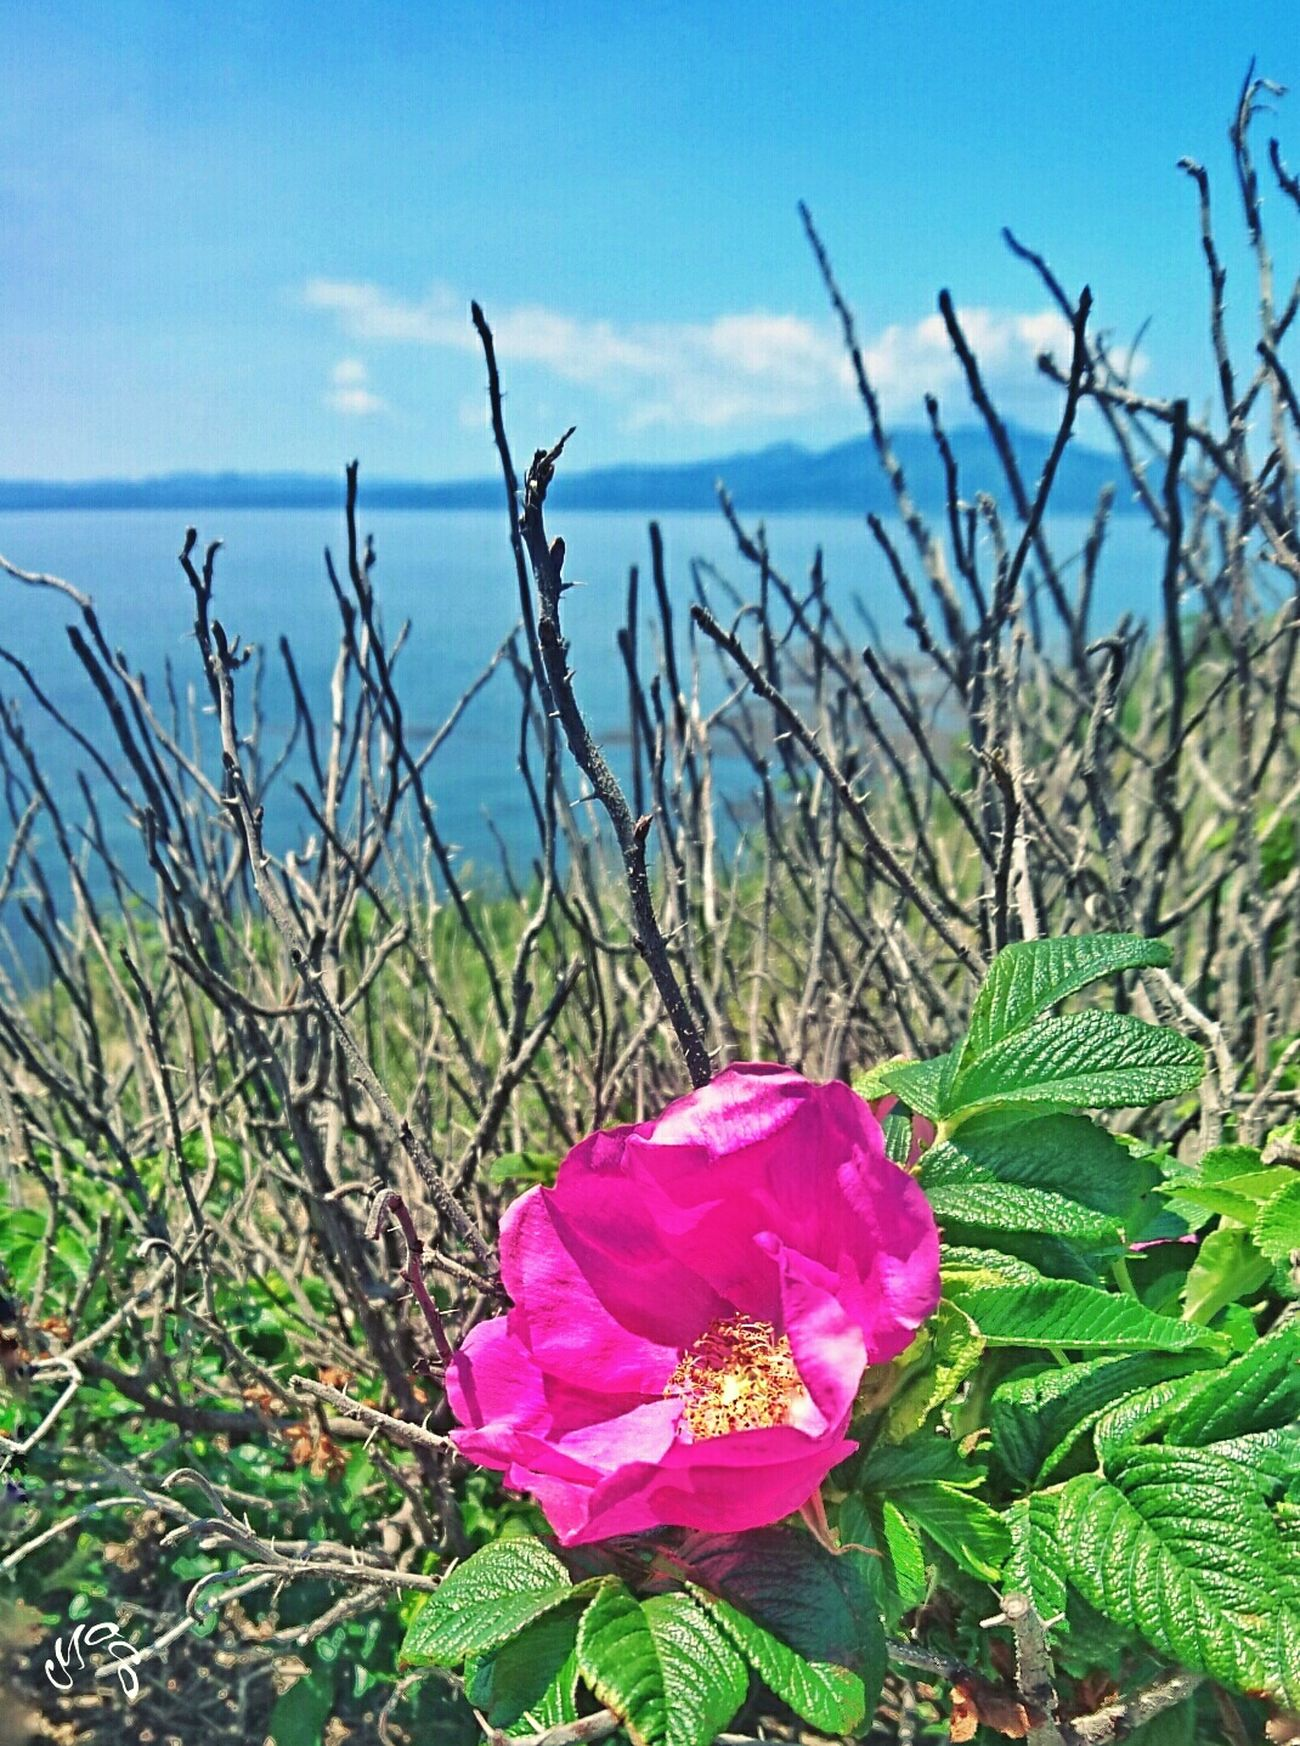 はまなすの花🌼良い香りが漂ってた💕 ハマナス Eyeem Flower Lover Sky Sea 空 海 花 EyeEm Nature Lover EyeEm Gallery Eyeem Photography Japanese Rose Rugosa Rose Ramanas Rose Ultimate JapanRamanasrose Japan Sky Of Japan Eyeem Sky_collection Japan Photography